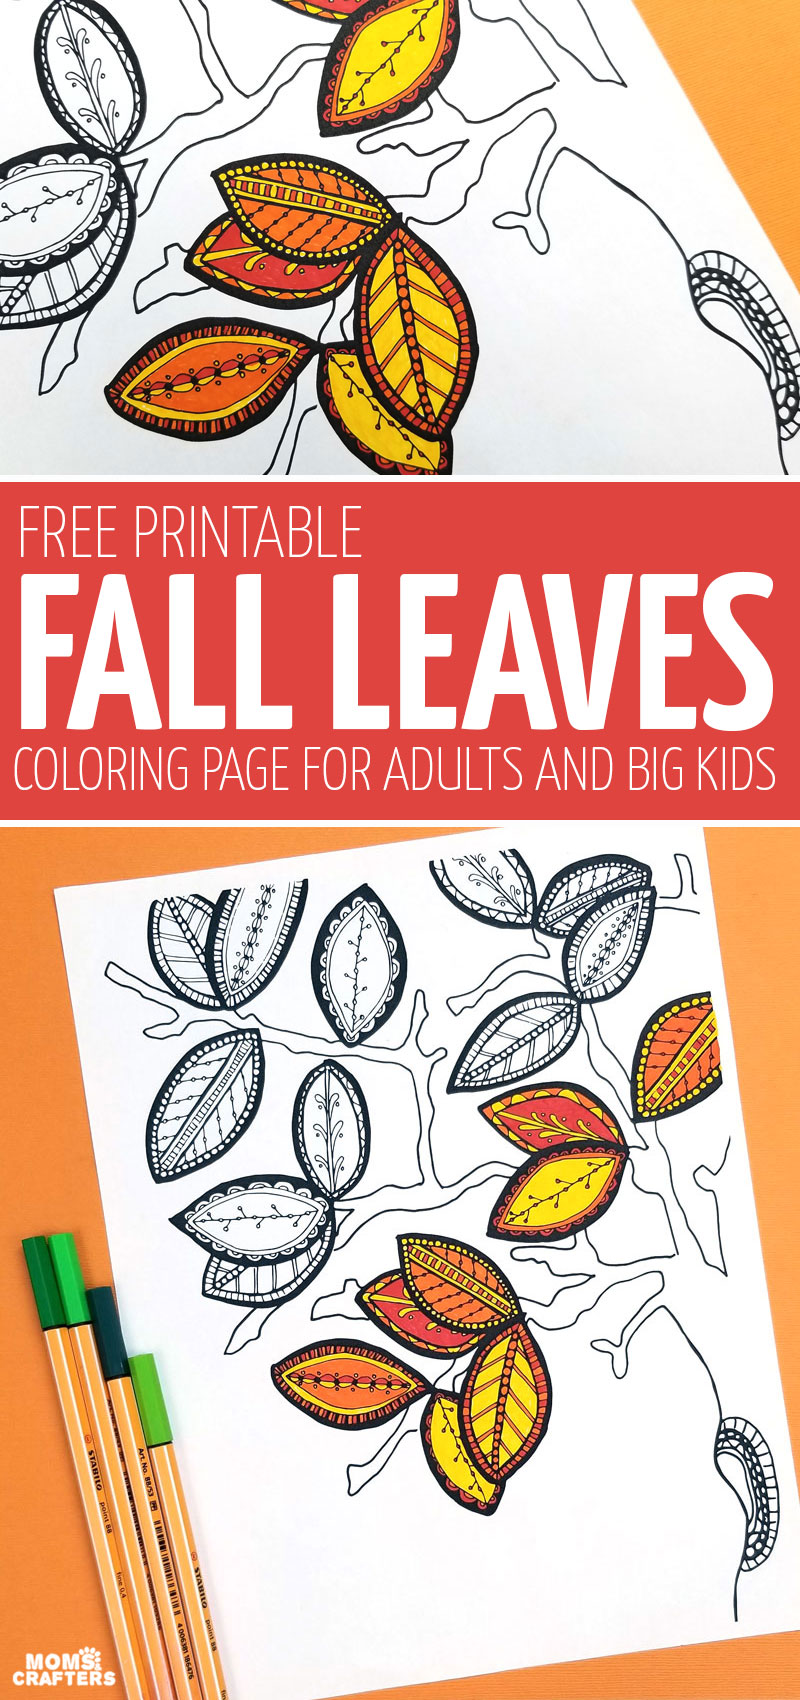 Click for free printable atumn coloring pages for adults! This free fall adult coloring page is not too complex and great for unwinding and relaxing with!